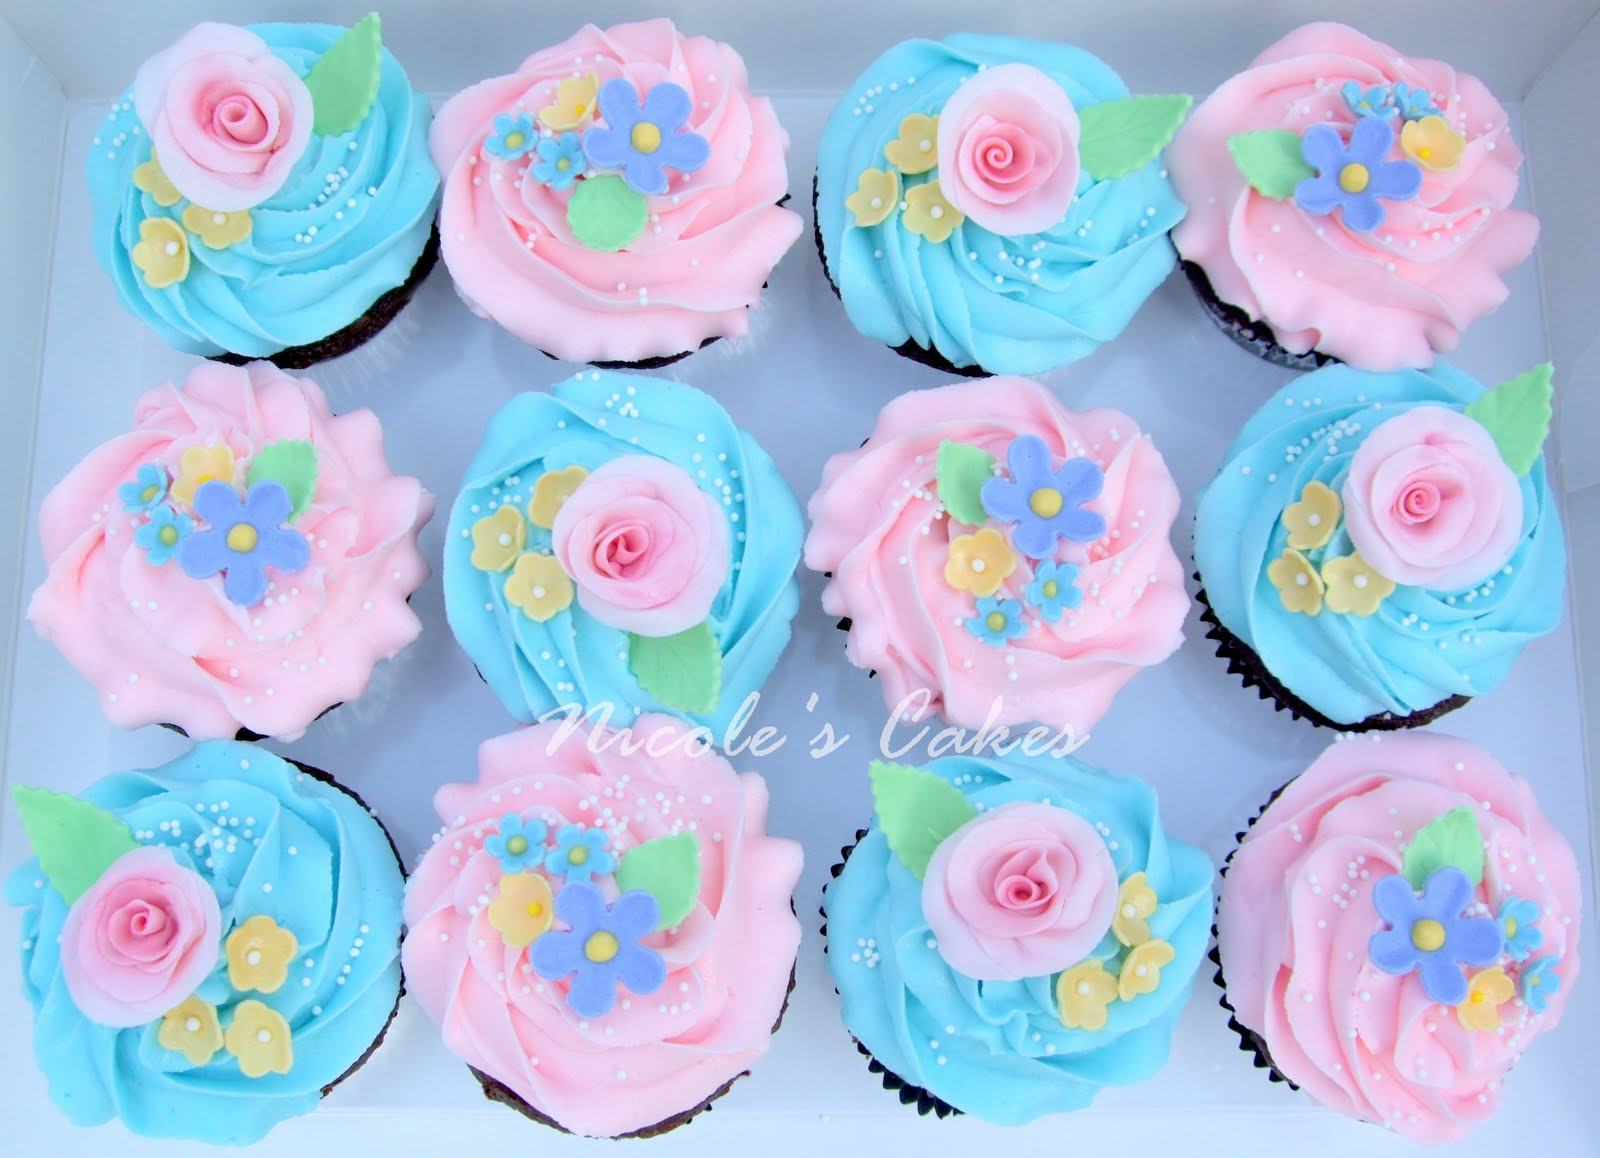 On Birthday Cakes Pretty Spring Flower Cupcakes